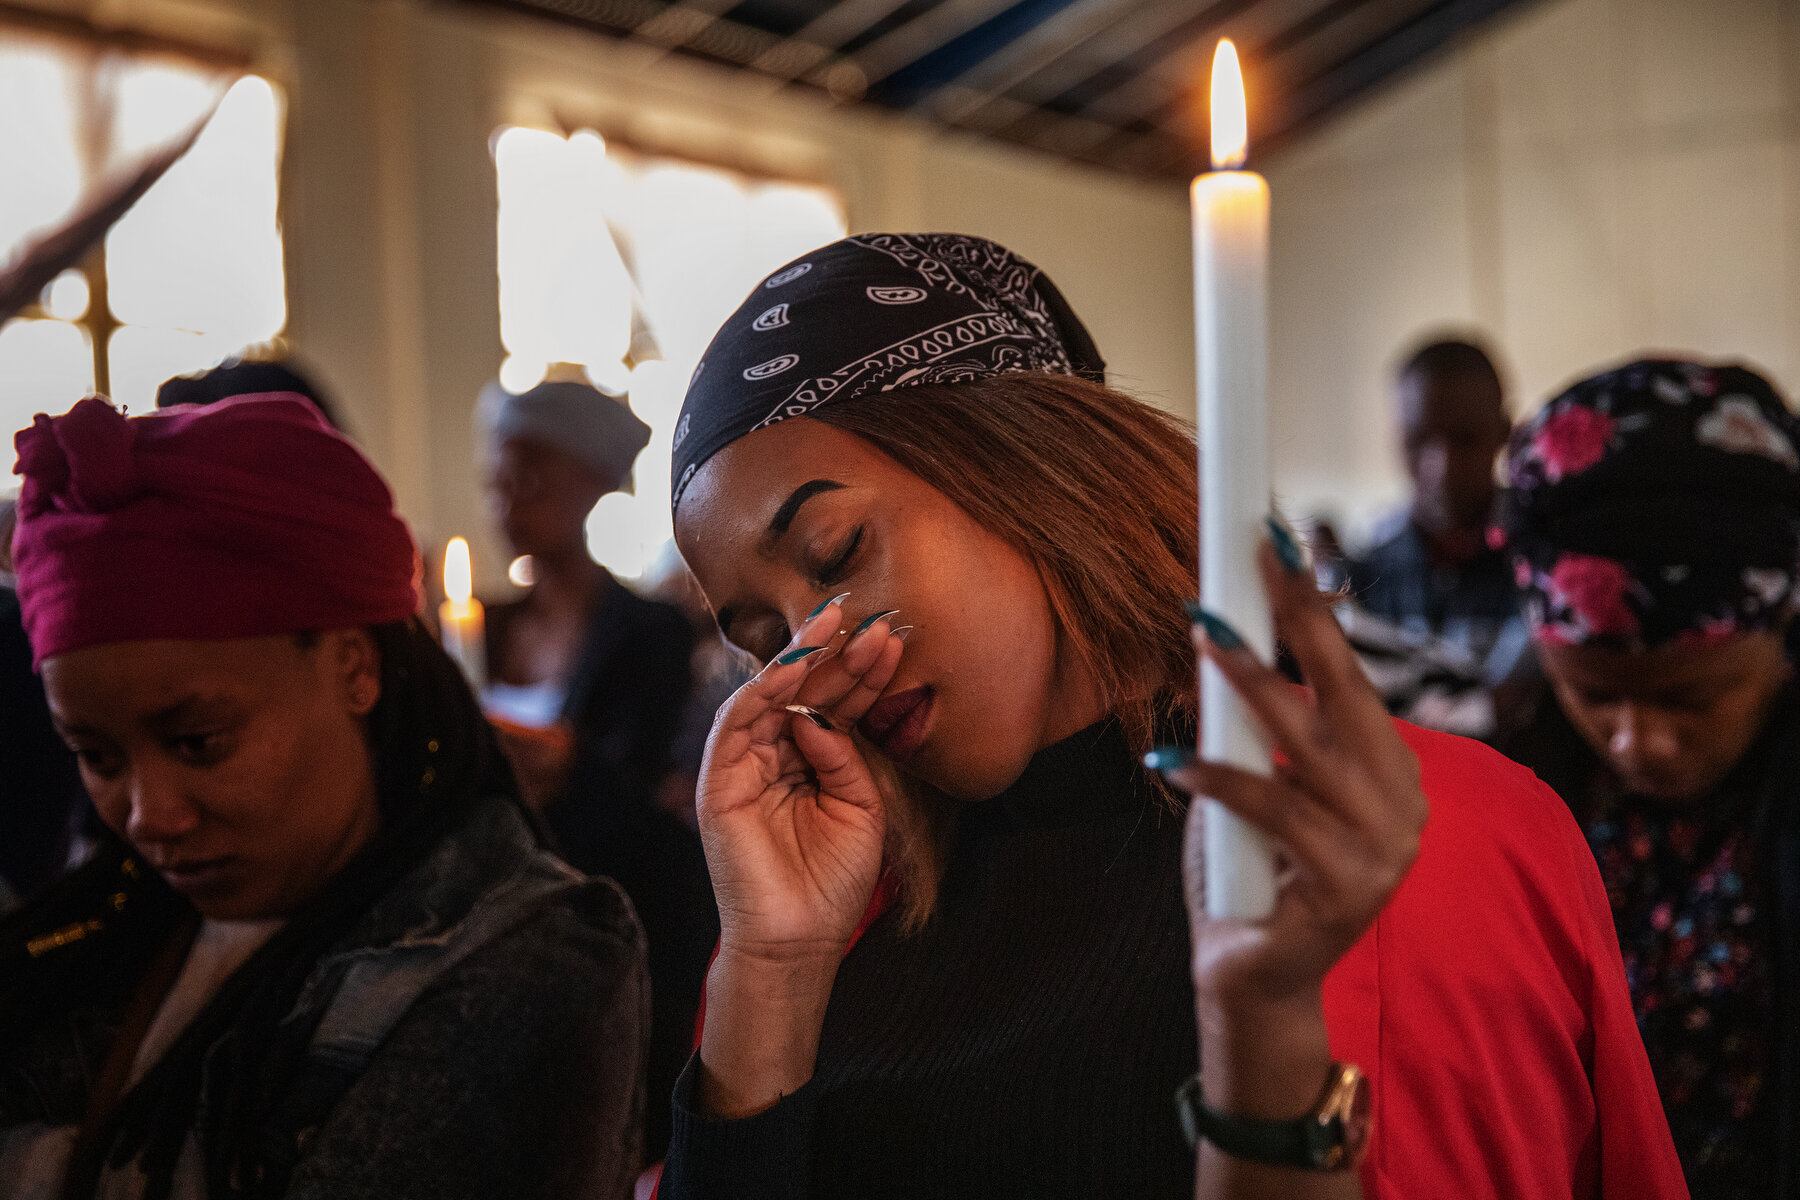 A woman reacts while praying at the joint memorial service of Keobakele Isaac Sebaku and Karabo Ditire in Johannesburg Coronationville suburb, on September 07, 2019, near where the two South African nationals were shot dead on September 03. South Africa's financial capital was recently hit by a new wave of violence mostly targeting foreign nationals.